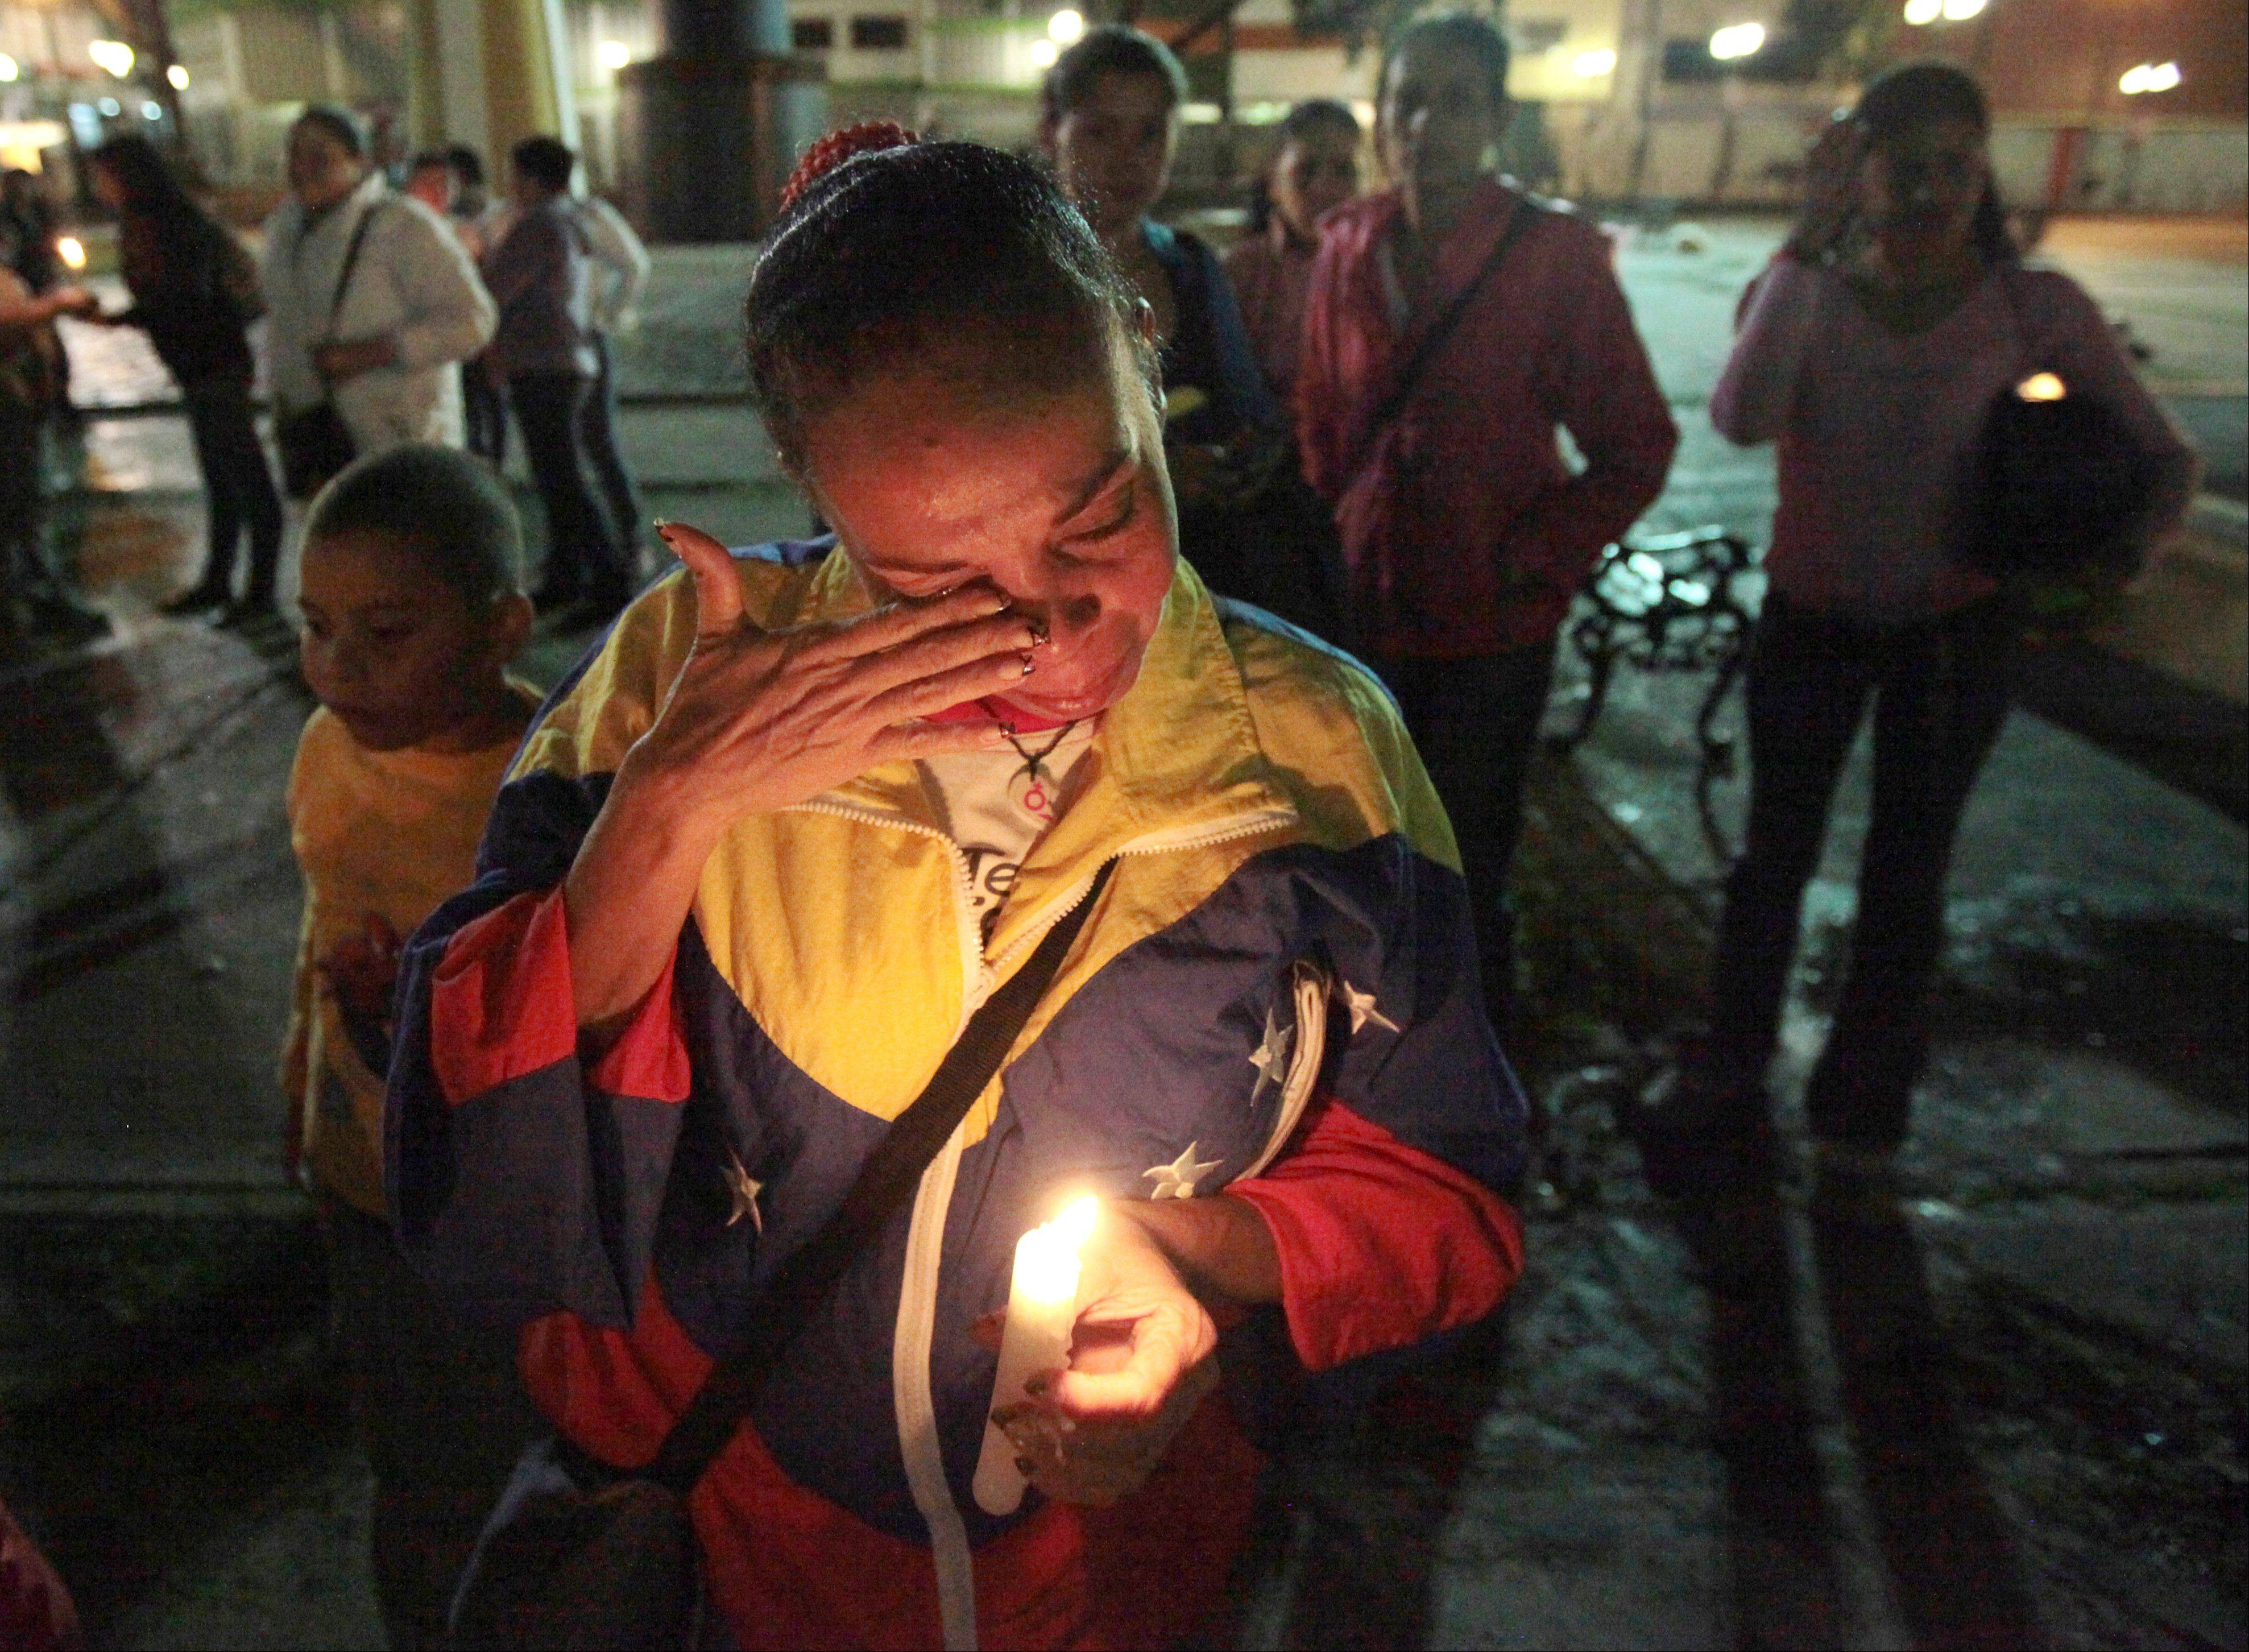 A woman holds a candle as she reacts during a vigil in support of Venezuela's President Hugo Chavez in Caracas, Venezuela, Thursday, Dec. 13, 2012. Chavez is recovering favorably despite suffering complications during cancer surgery in Cuba, his Vice President Nicolas Maduro said Thursday amid uncertainty over the Venezuelan leader's health crisis and the country's political future.